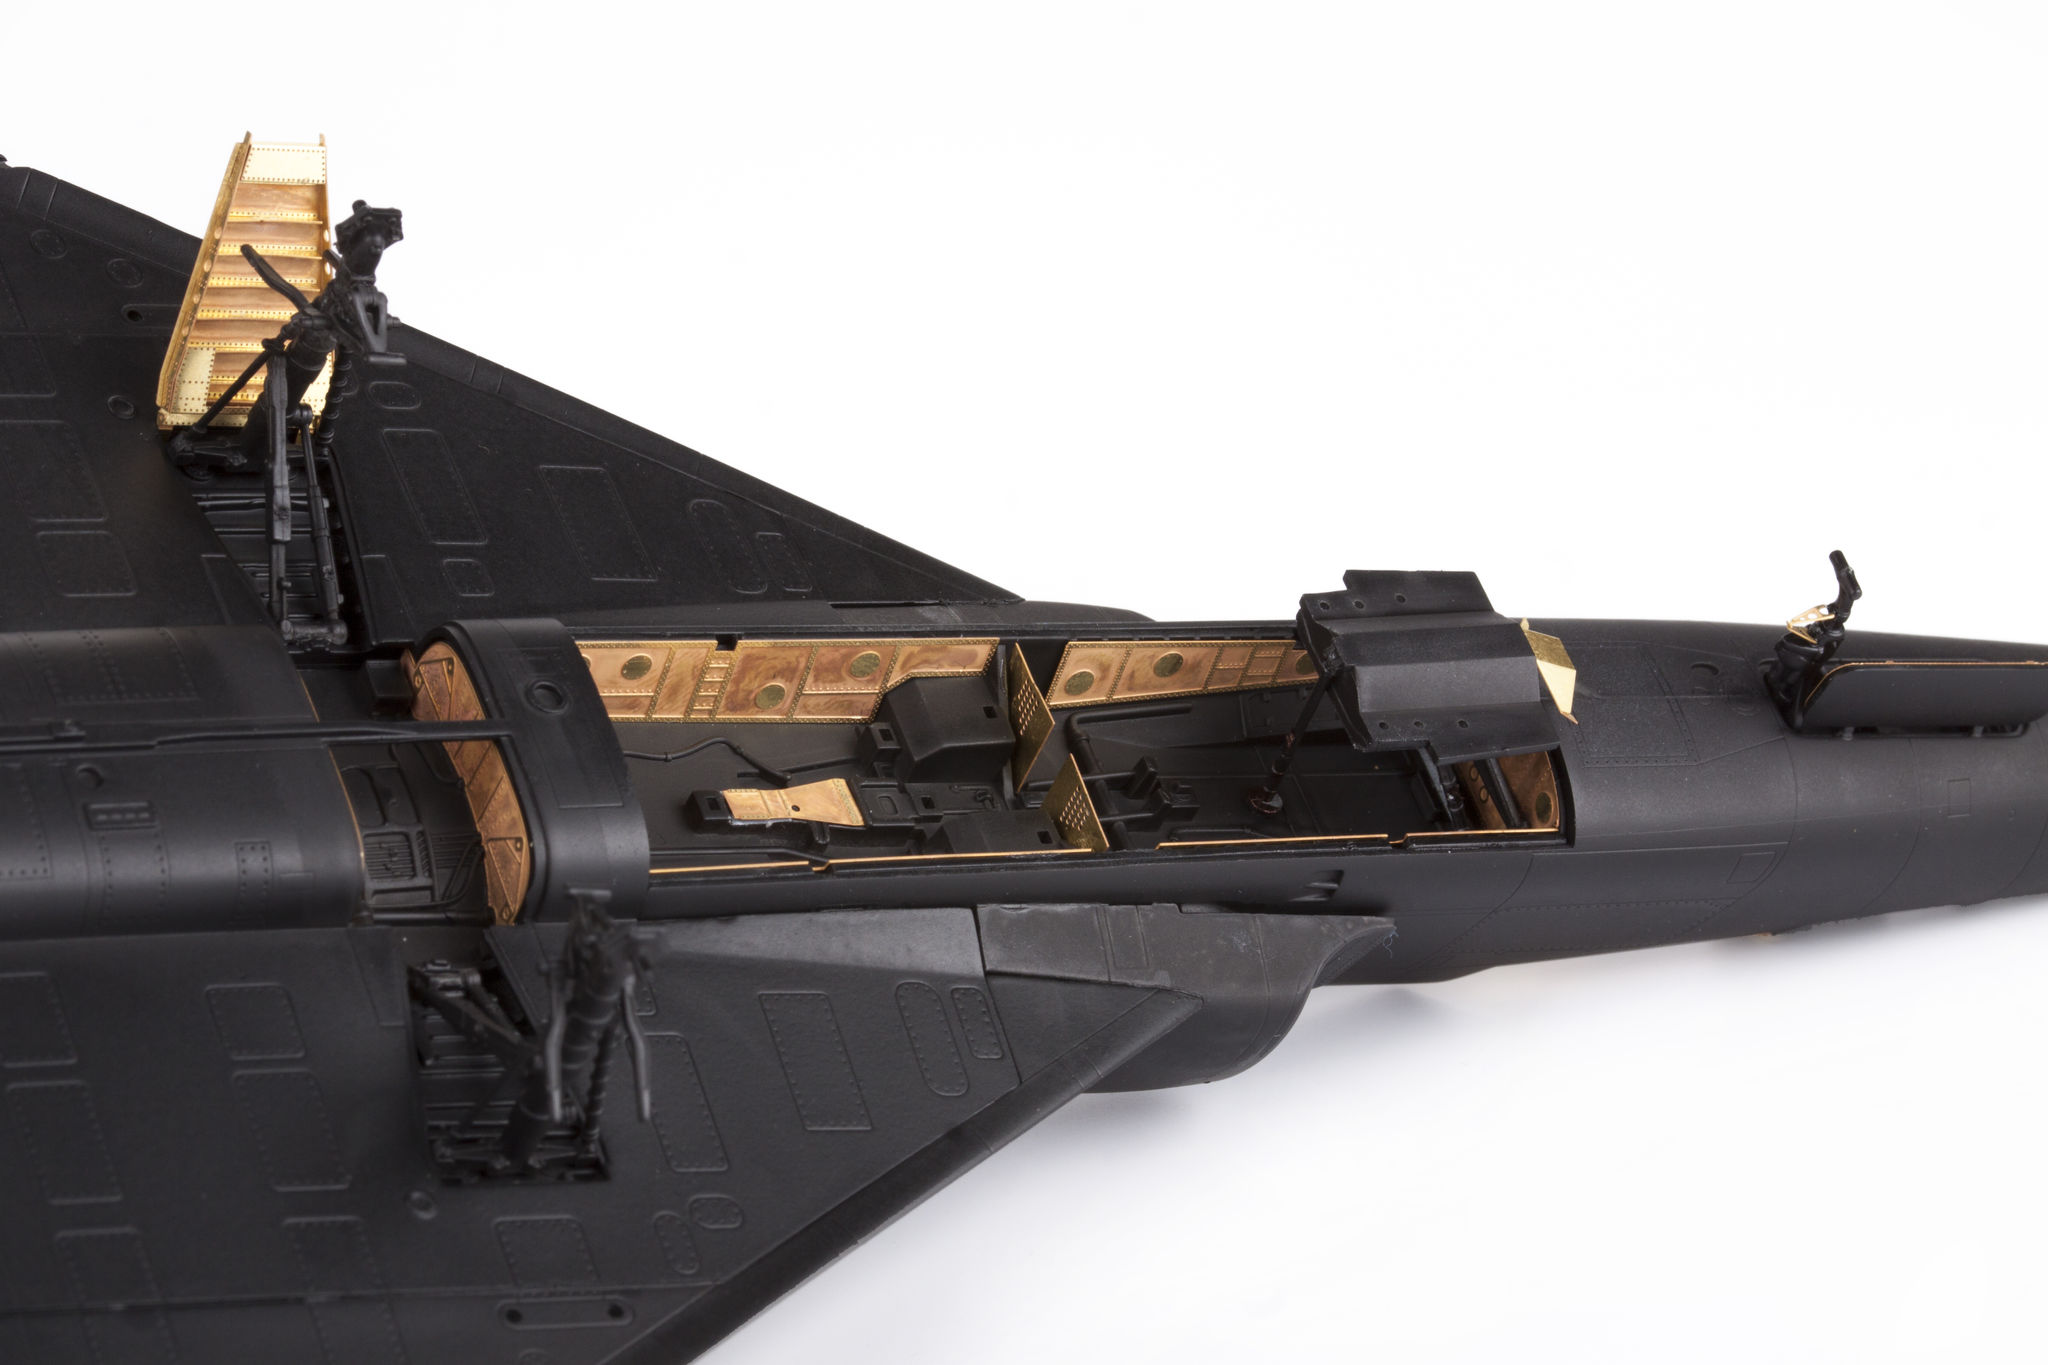 EDUARD 73631 Detail Set for Trumpeter® Kit F-106A in 1:72